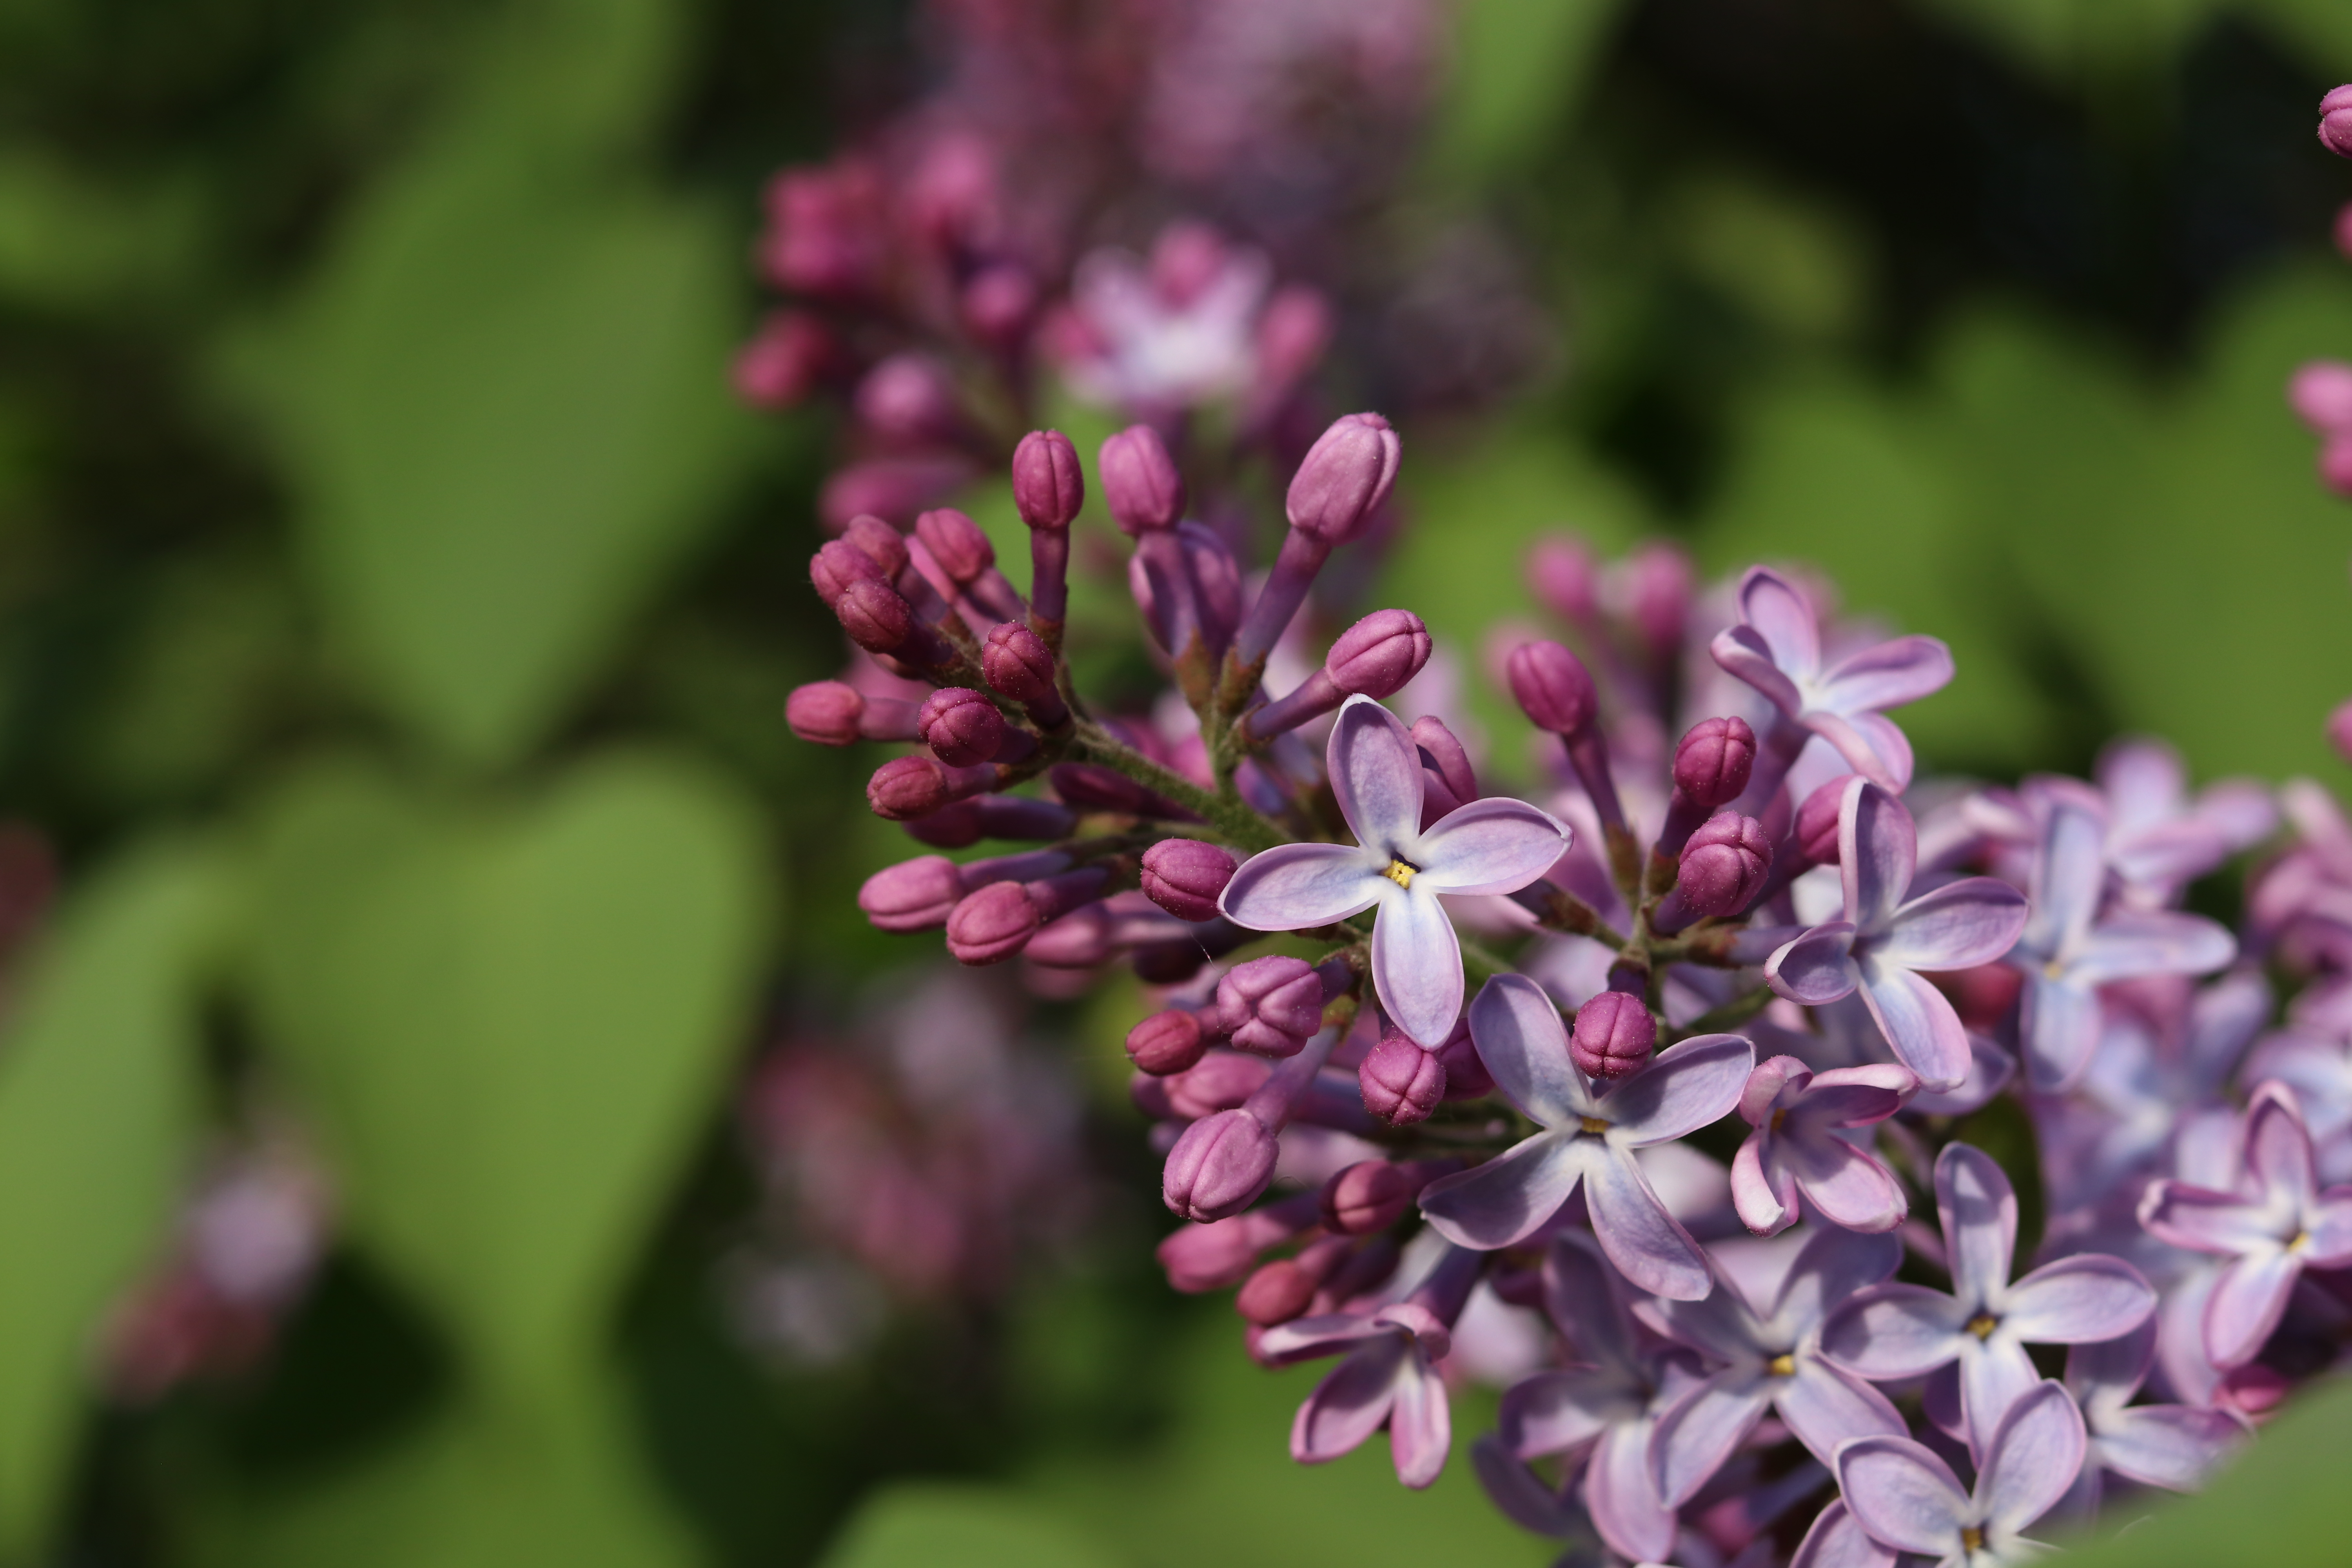 Open and closed lilac blossoms